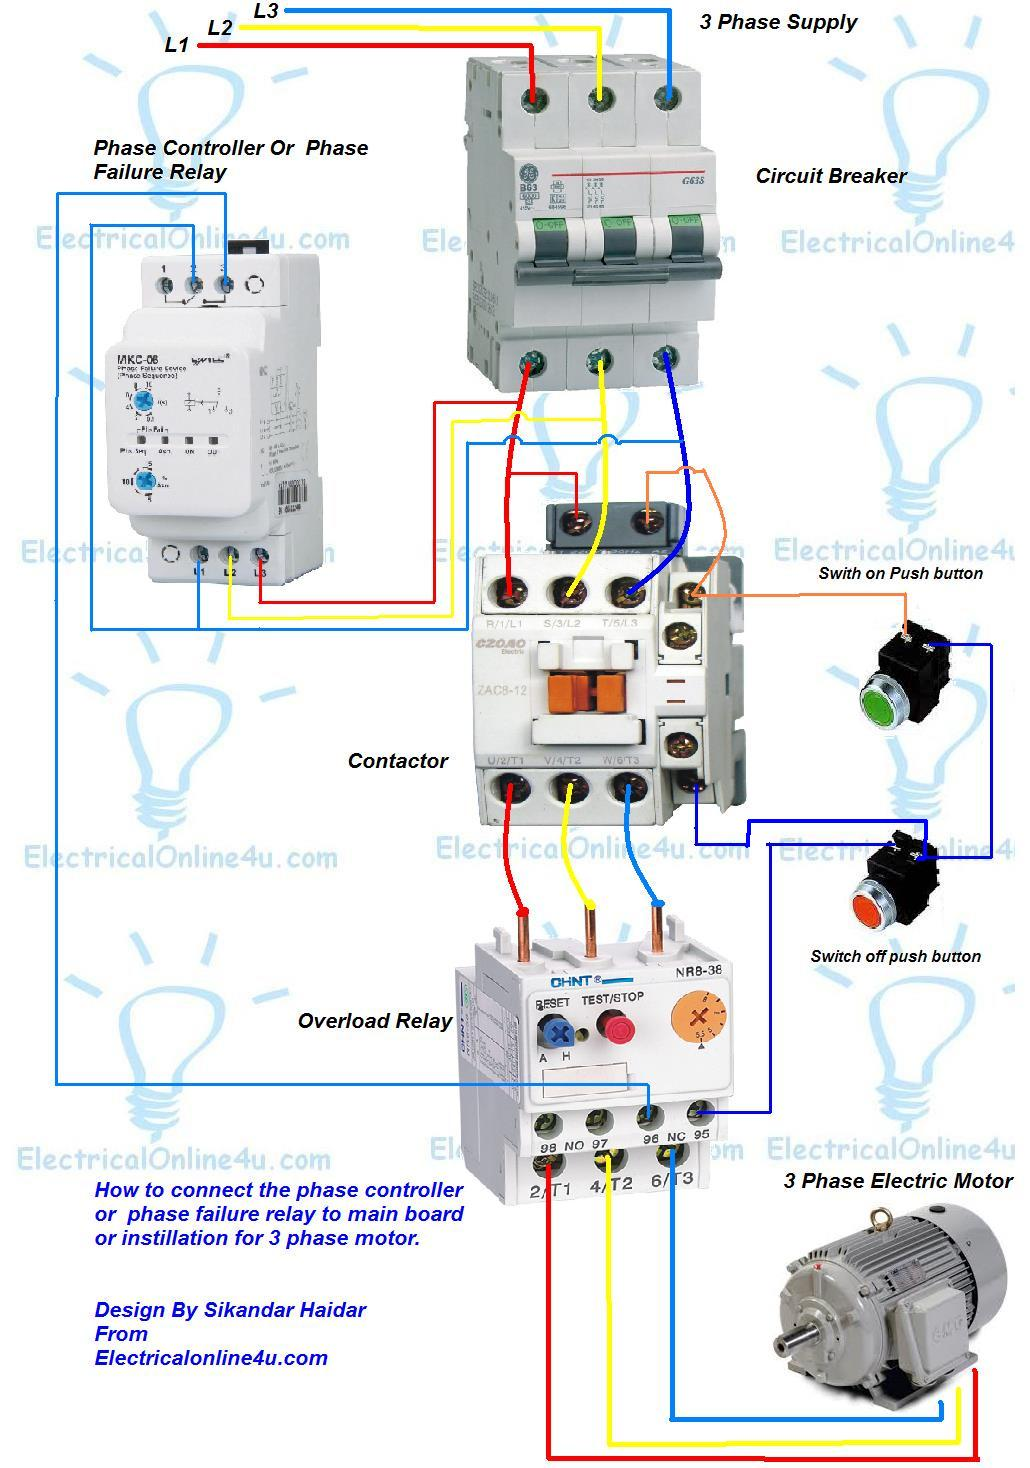 Phase%2Bfailure%2Brelay%2B %2Bphase%2Bcontroller%2Binstilaion%2Bin%2B3%2Bphase%2BMain%2Bboard%2Bor%2Bfor%2B3%2Bphase%2Bmotor phase controller wiring phase failure relay diagram electrical controller wire diagram for 3246e2 lift at fashall.co